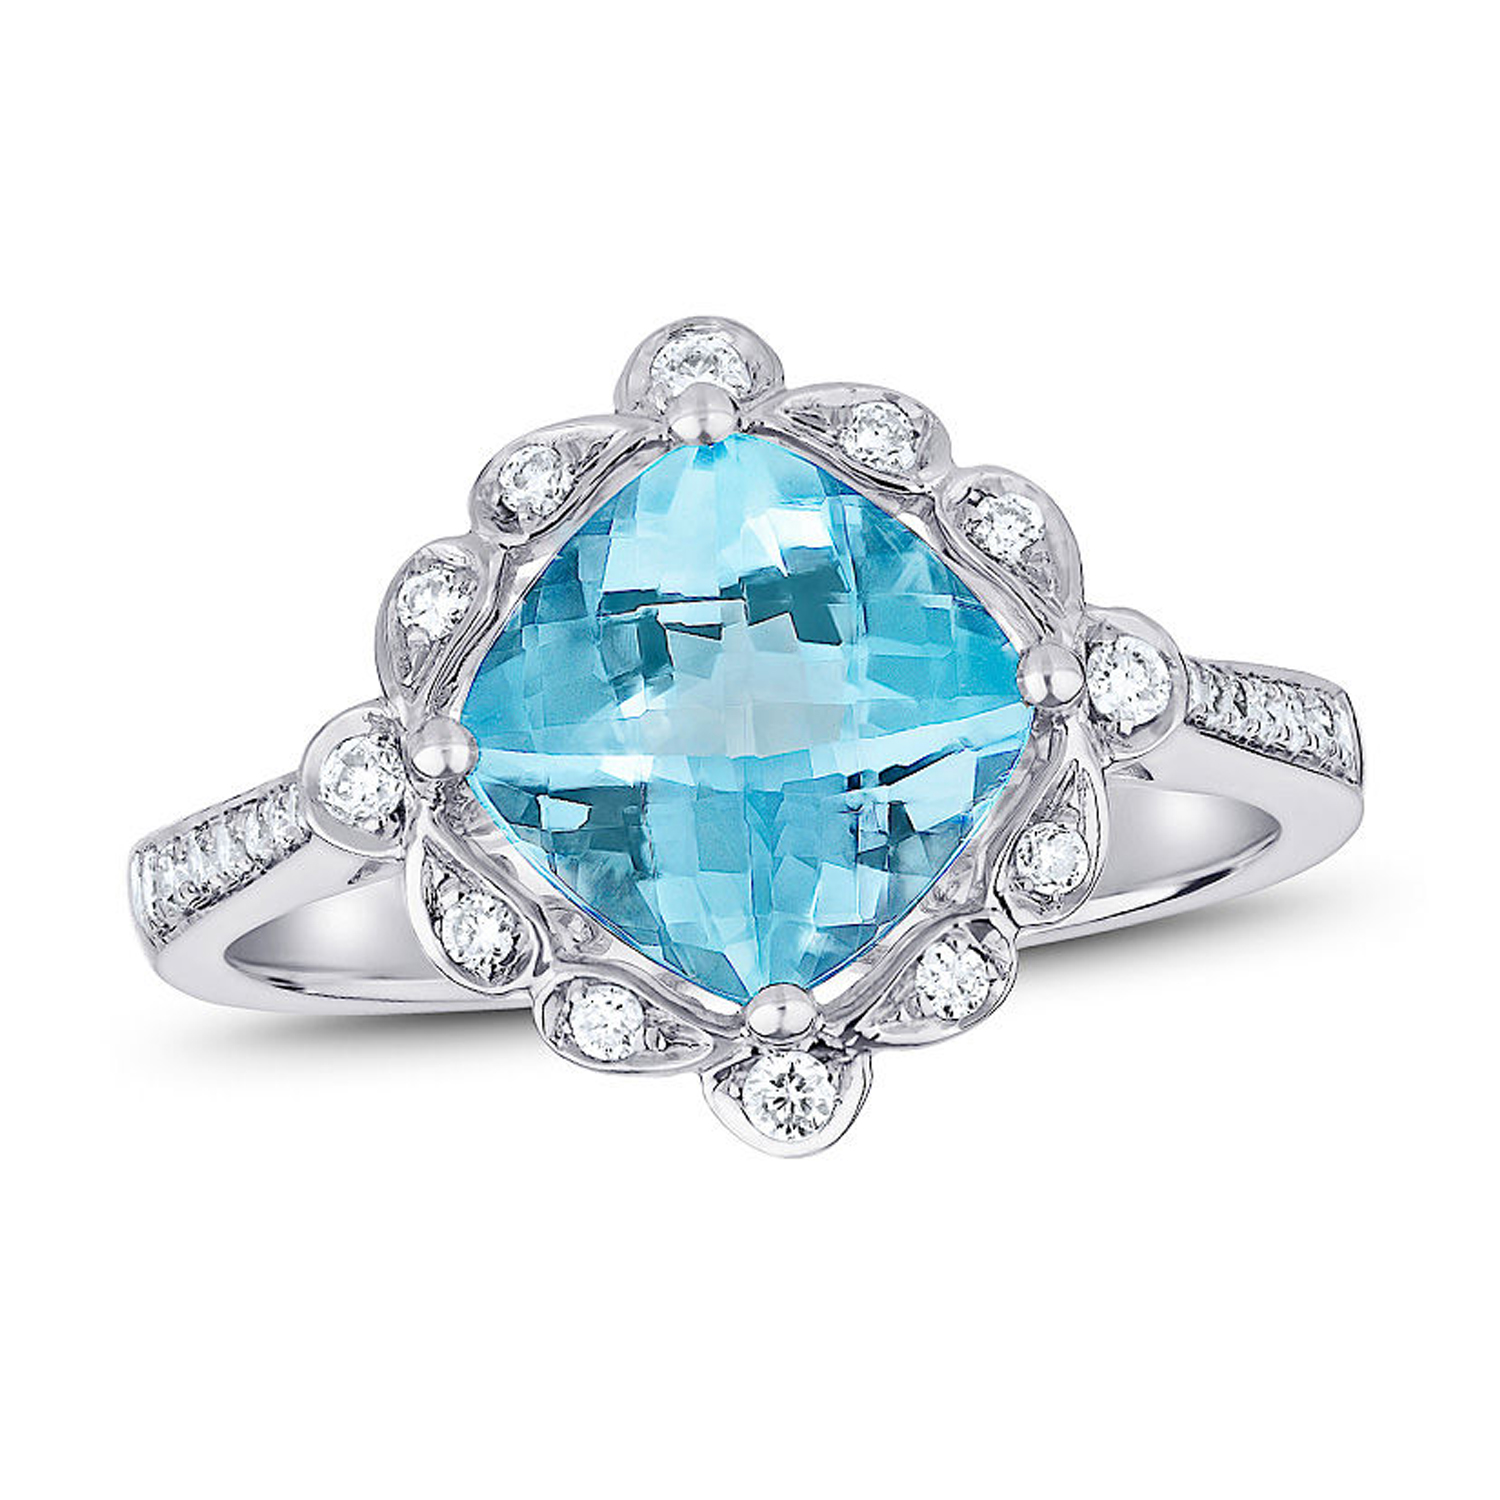 View 2.60ctw Blue Topaz and Diamond Ring in 14k White Gold